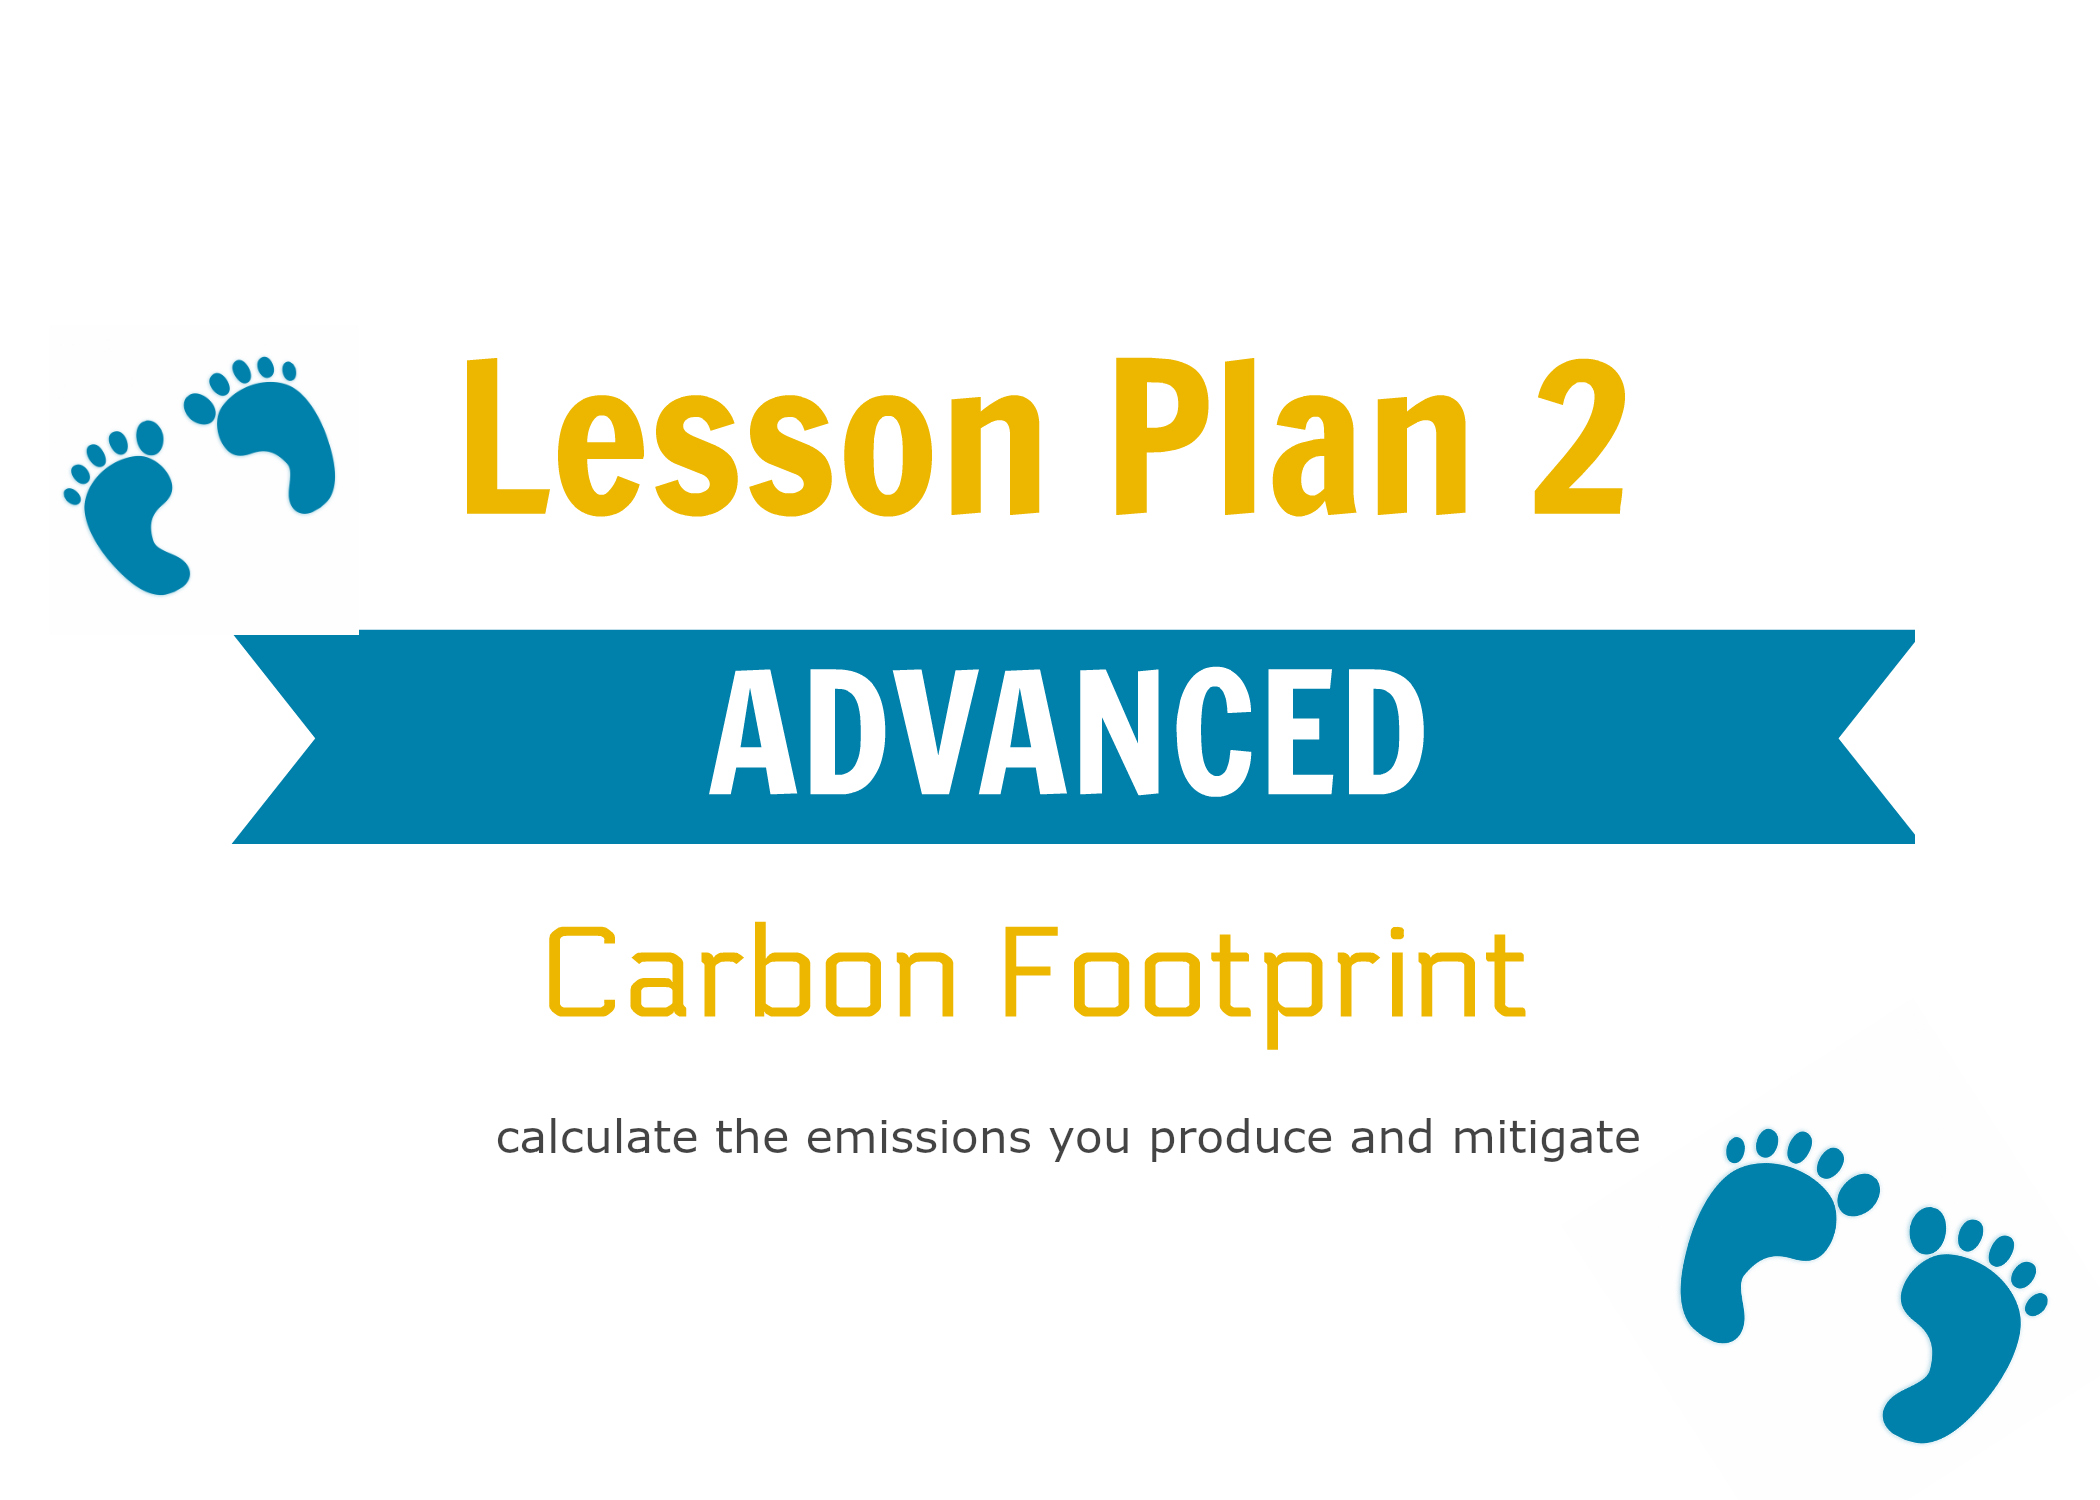 - Includes all INTERMEDIATE content + instructions for determining the carbon footprint of your school.